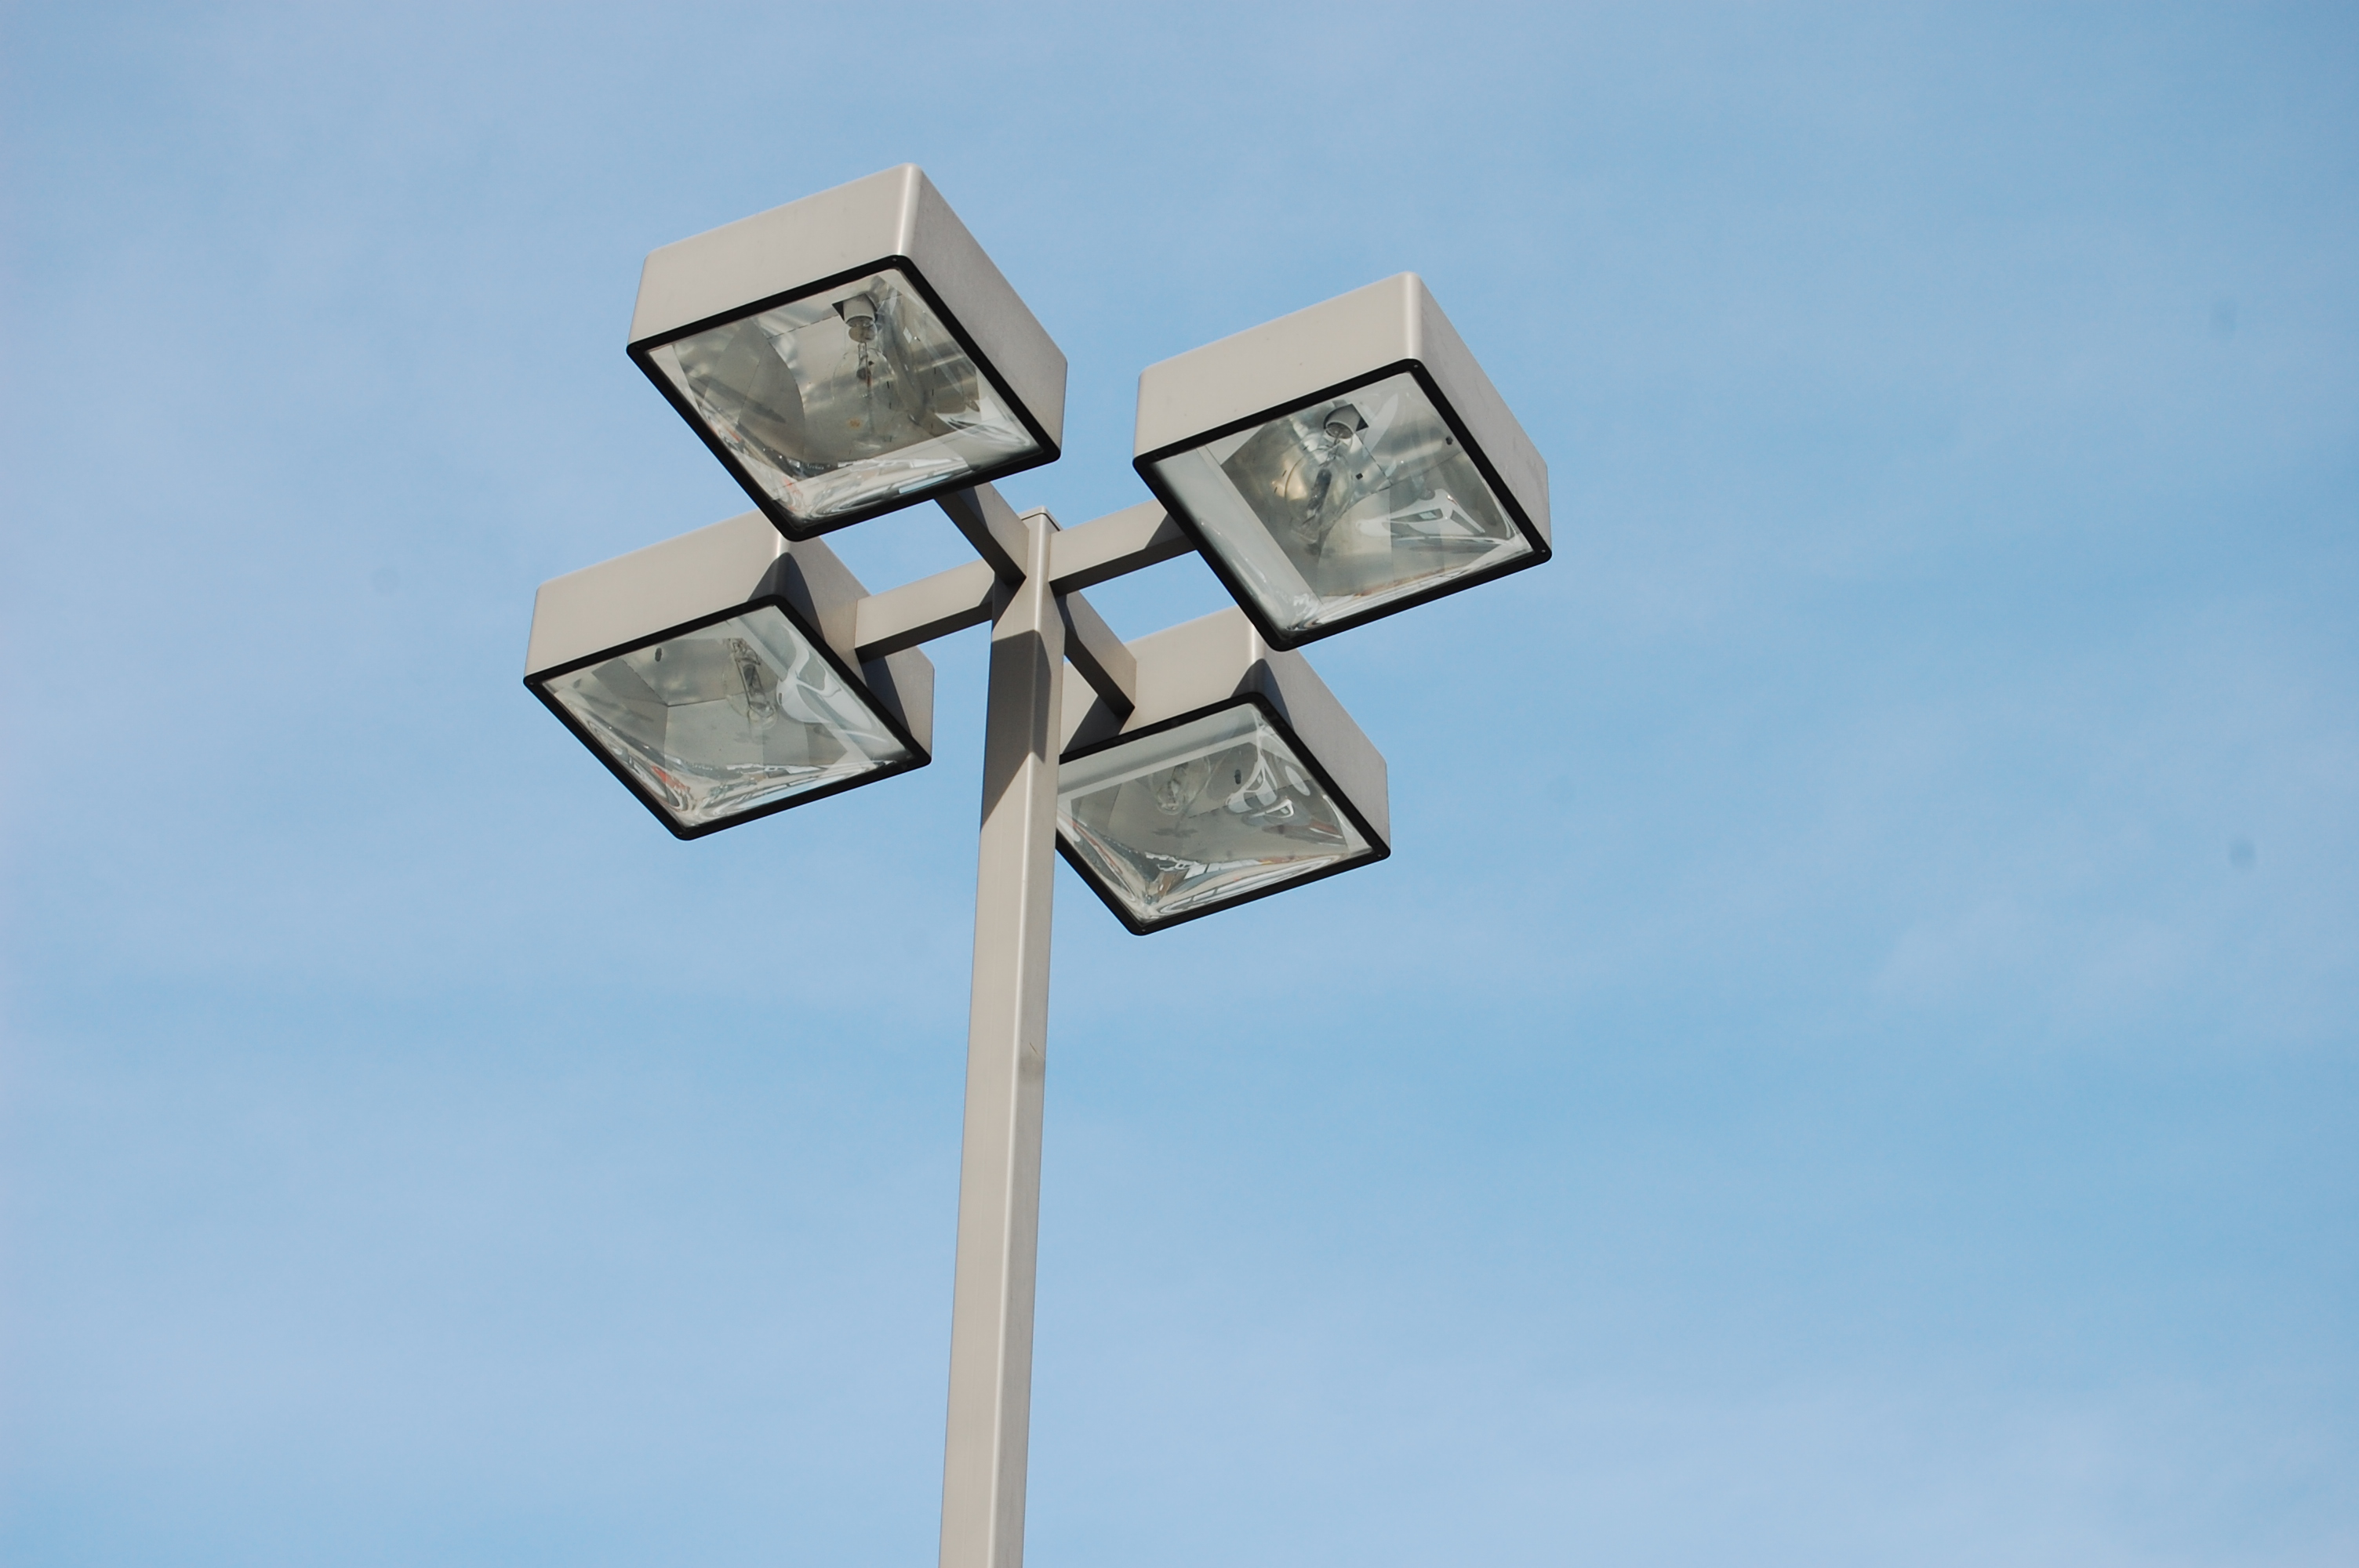 Lighting And High Reach Electrical Service Poles For